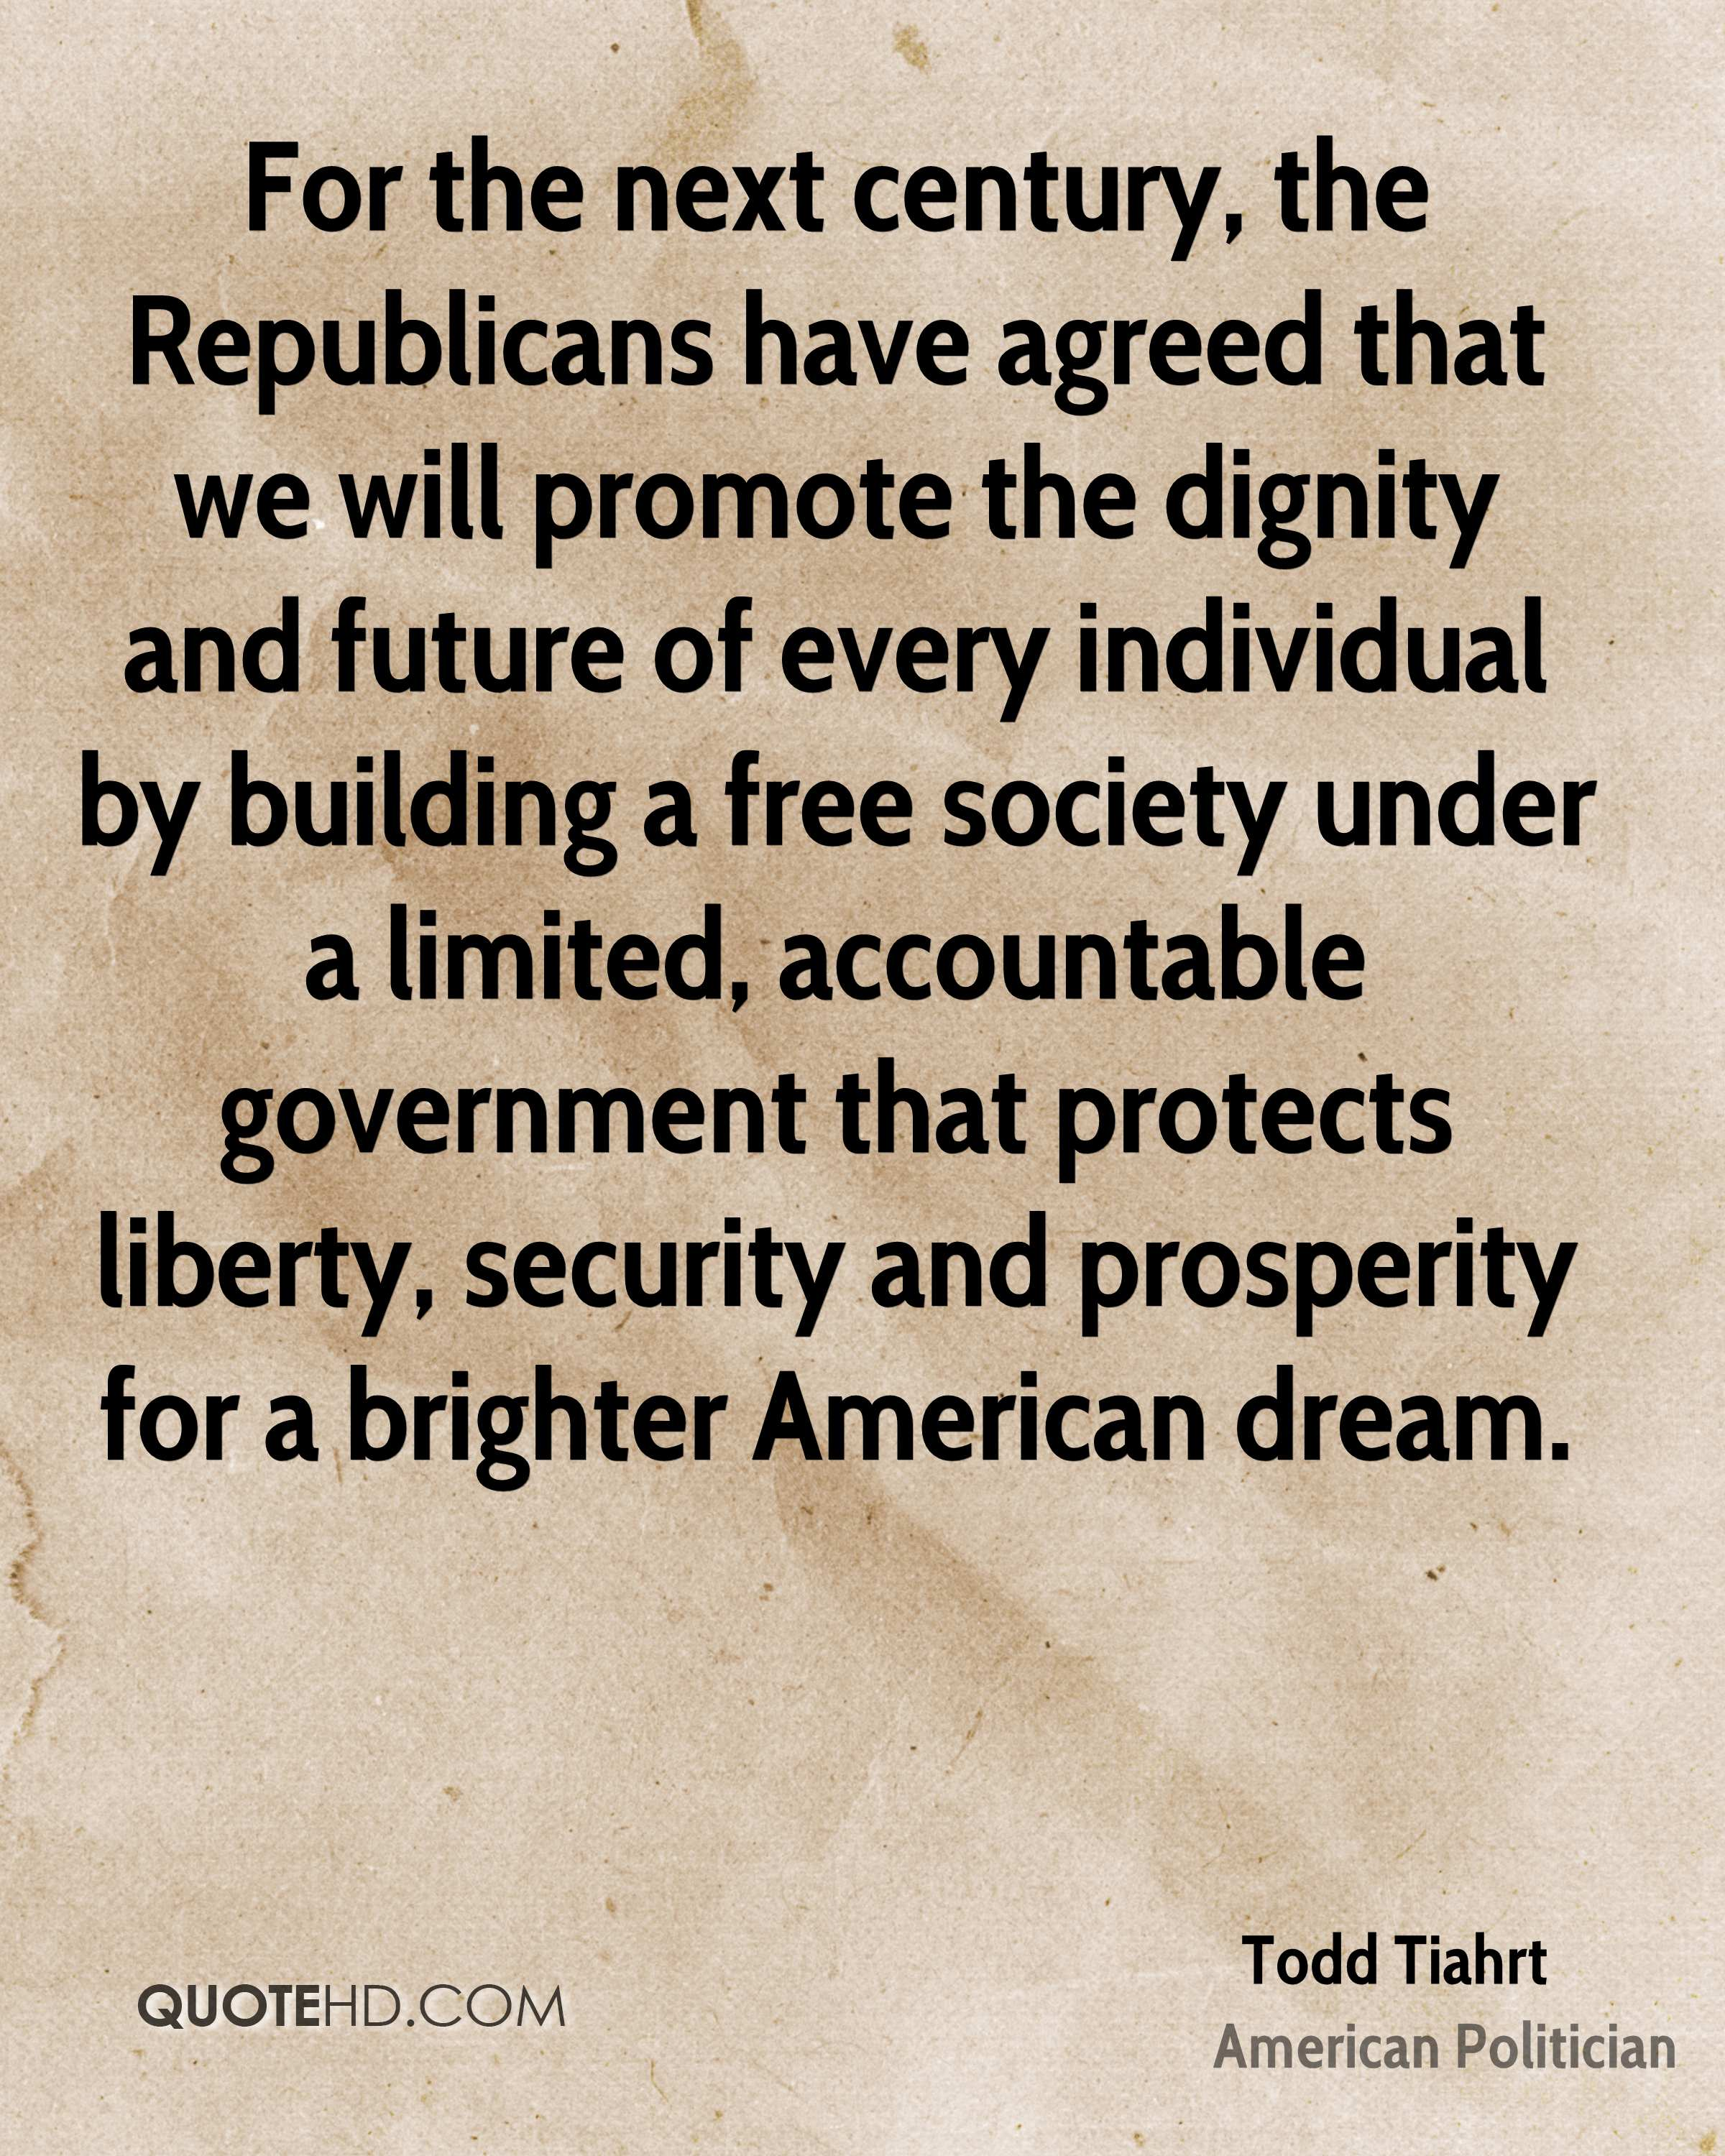 For the next century, the Republicans have agreed that we will promote the dignity and future of every individual by building a free society under a limited, accountable government that protects liberty, security and prosperity for a brighter American dream.